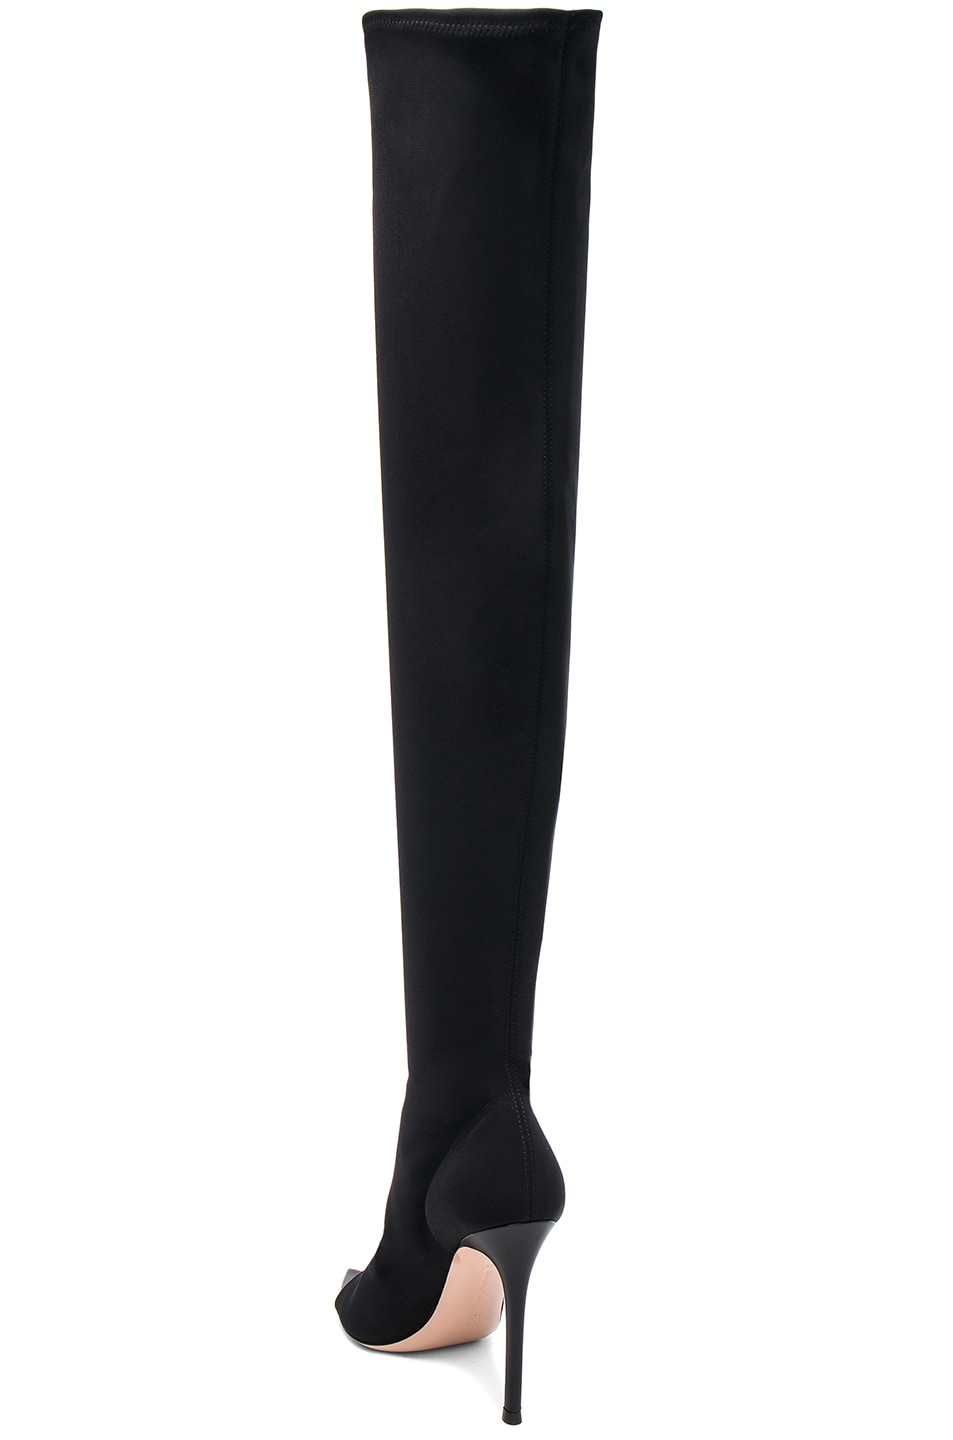 Image 3 of Gianvito Rossi Gotham Cuissard Peep Toe Thigh High Boots in Black & Black